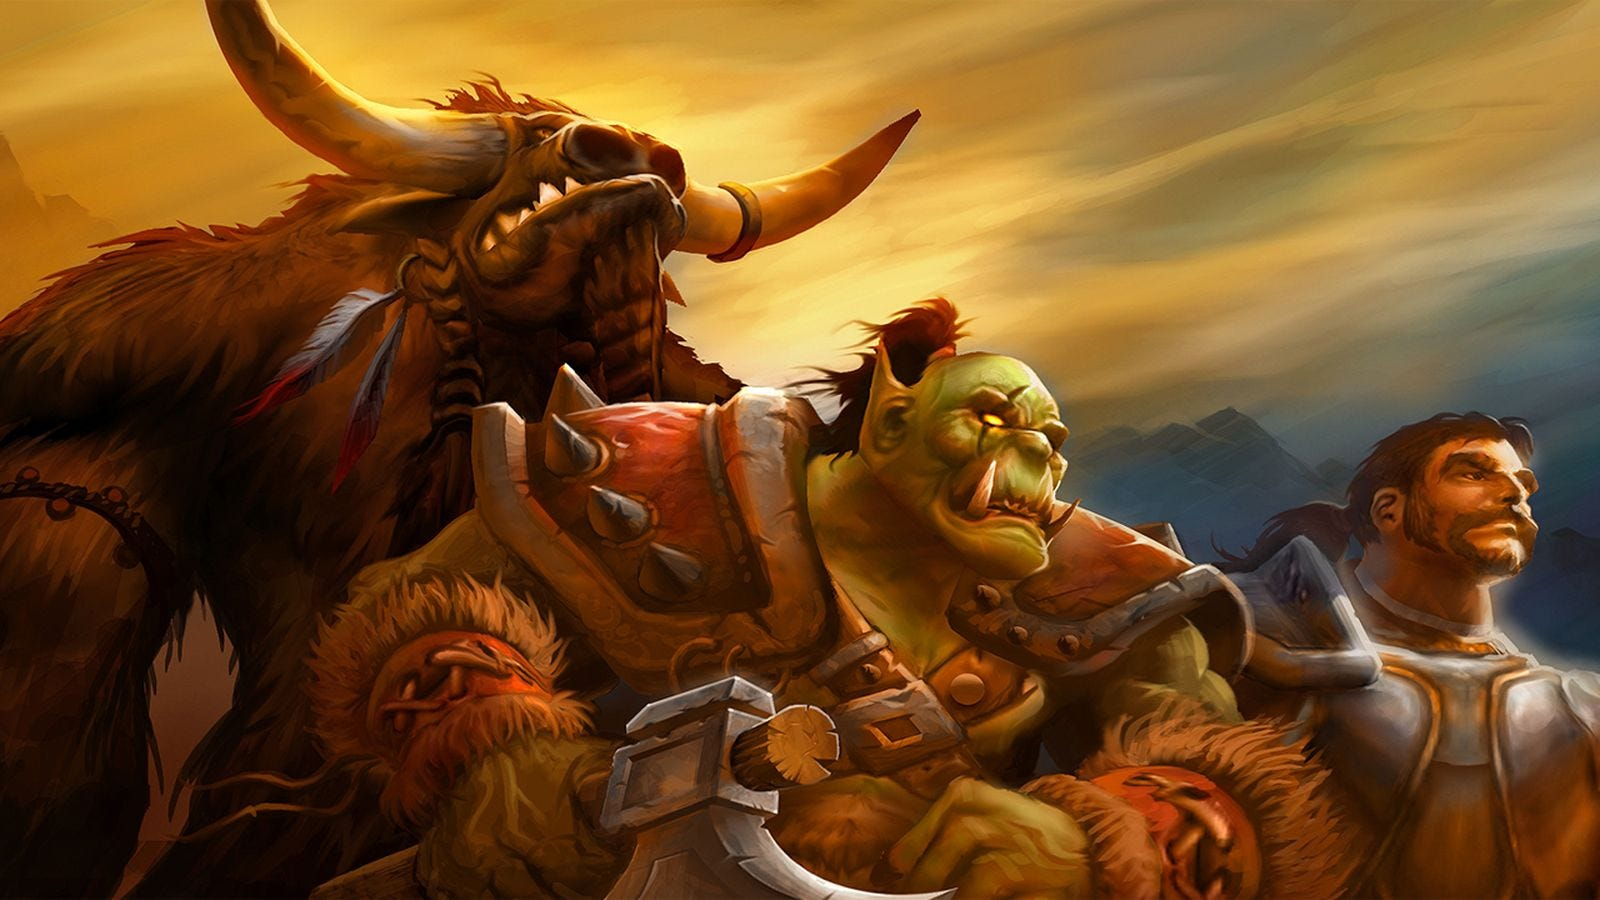 dating through world of warcraft World of warcraft may boost seniors' cognitive ability: study role-playing game world of warcraft may keep university's gains through gaming lab tested.